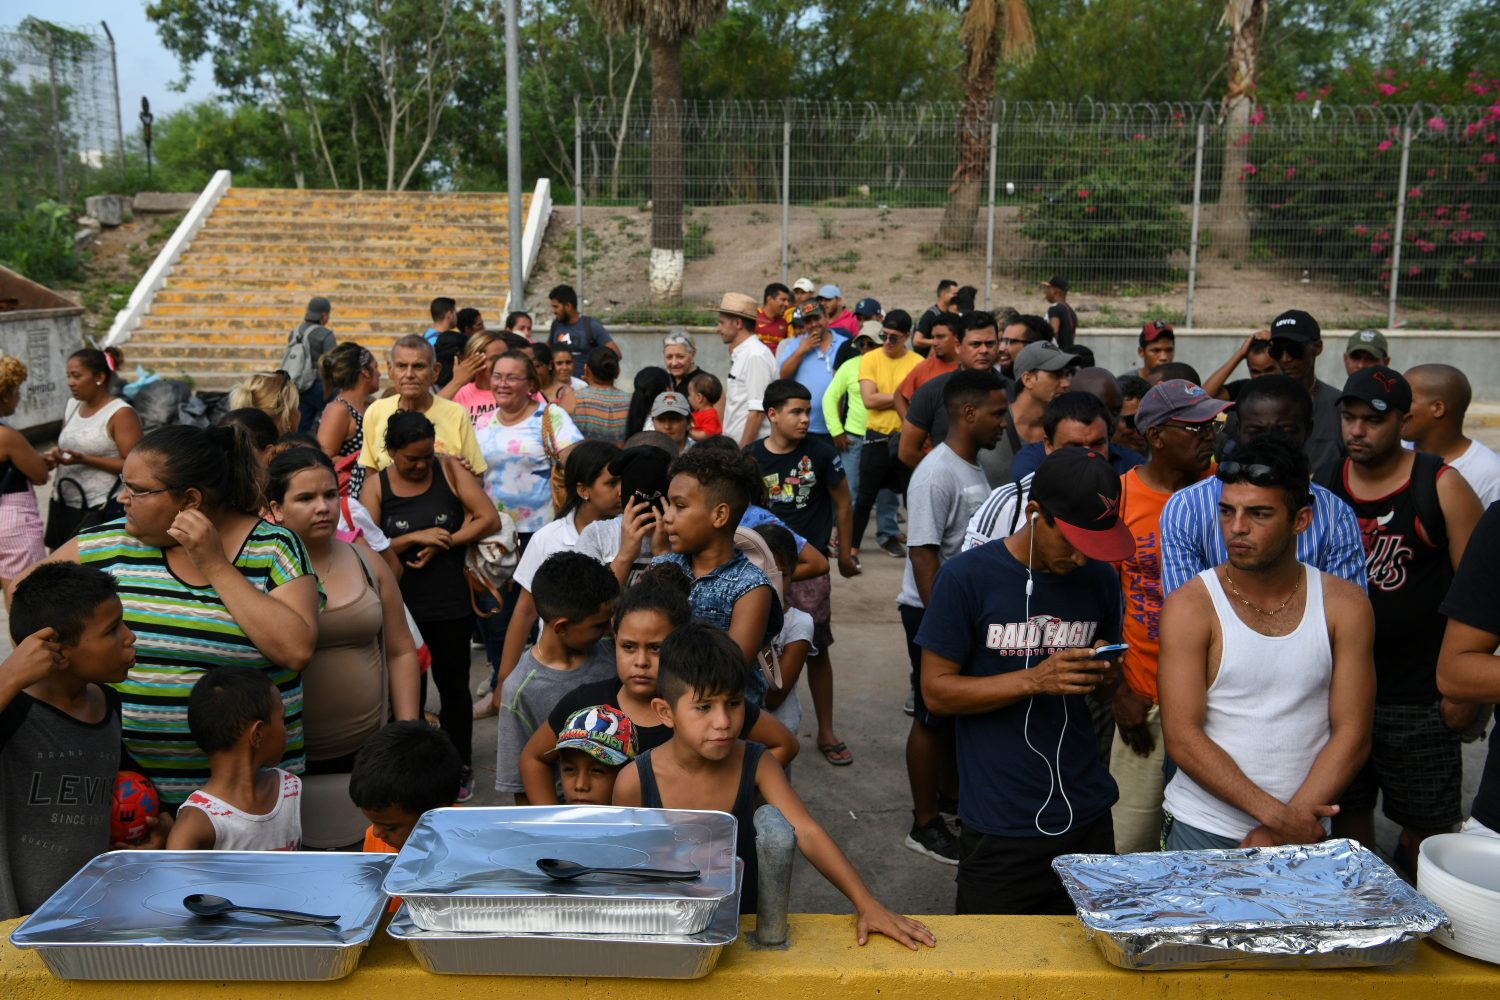 Asylum seekers waiting in hopes of being let through the nearby U.S. port of entry line up for a meal provided by volunteers at a makeshift migrant camp by the Gateway International Bridge in Matamoros, Tamaulipas, Mexico, June 26, 2019. REUTERS/Loren Elliott